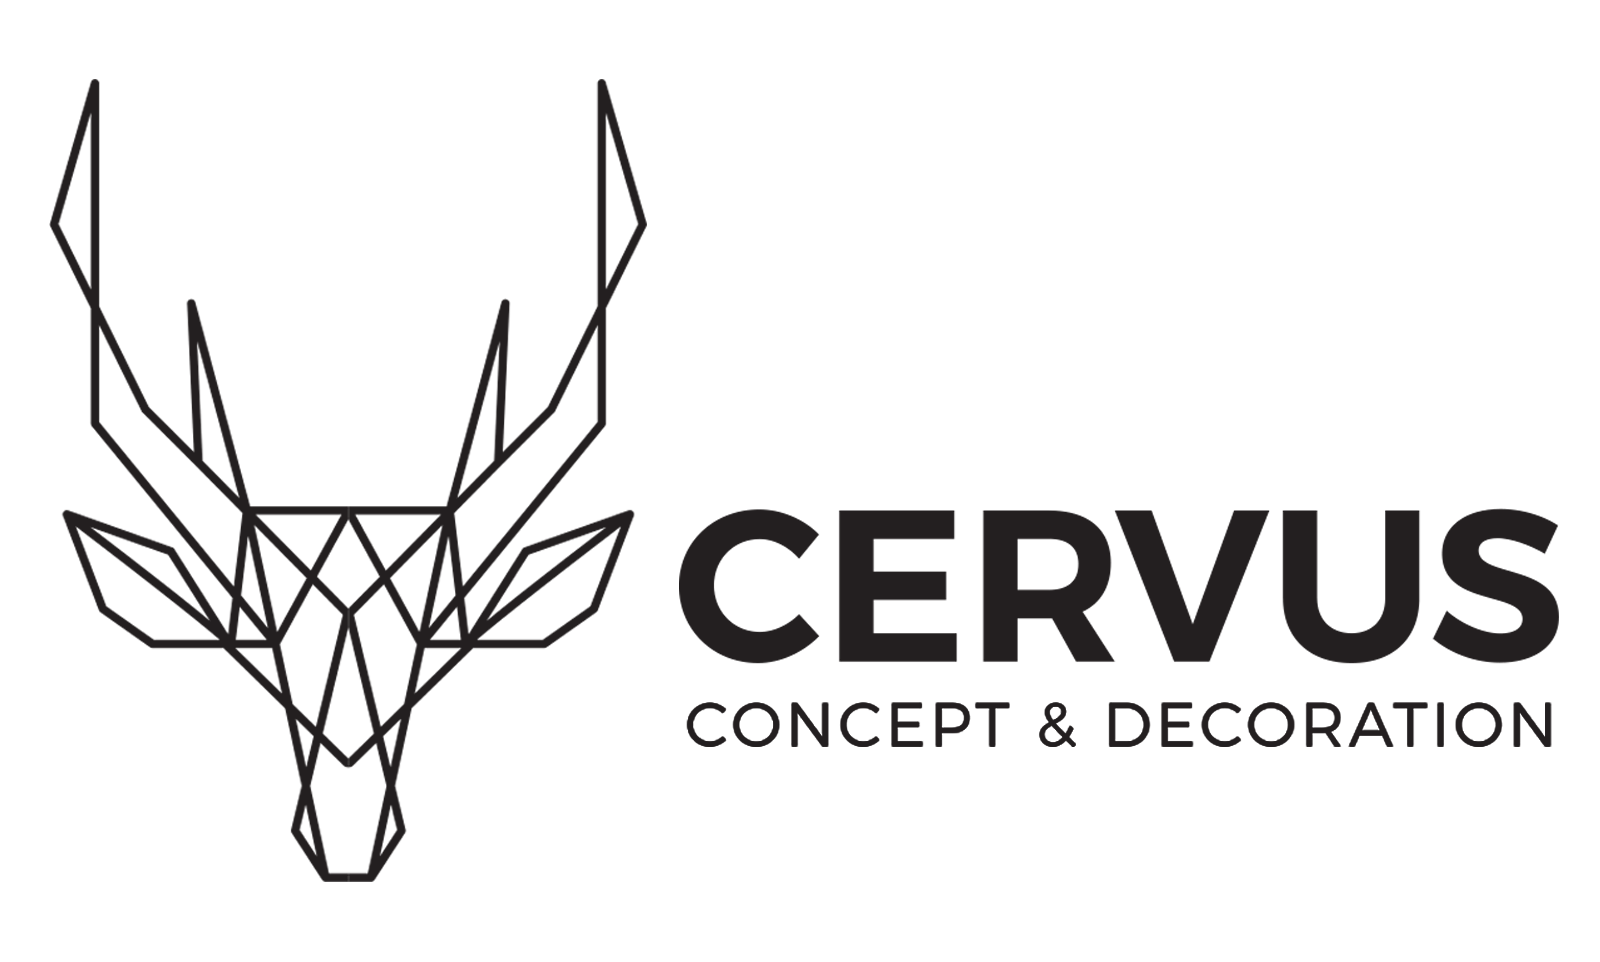 CERVUS - Concept & Decoration